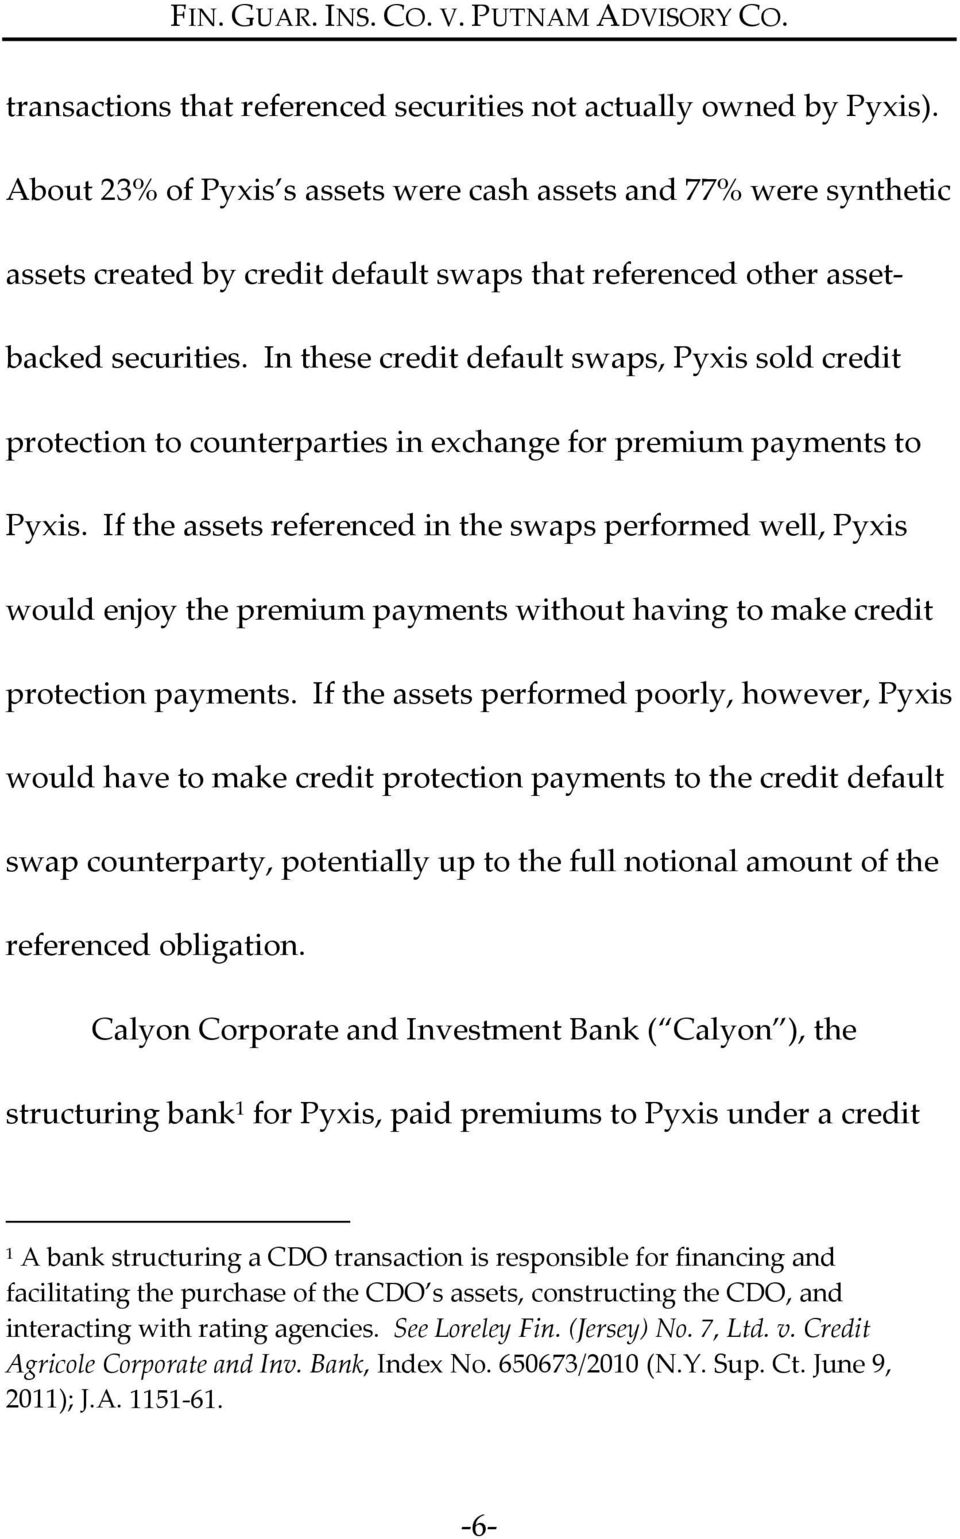 In these credit default swaps, Pyxis sold credit protection to counterparties in exchange for premium payments to Pyxis.